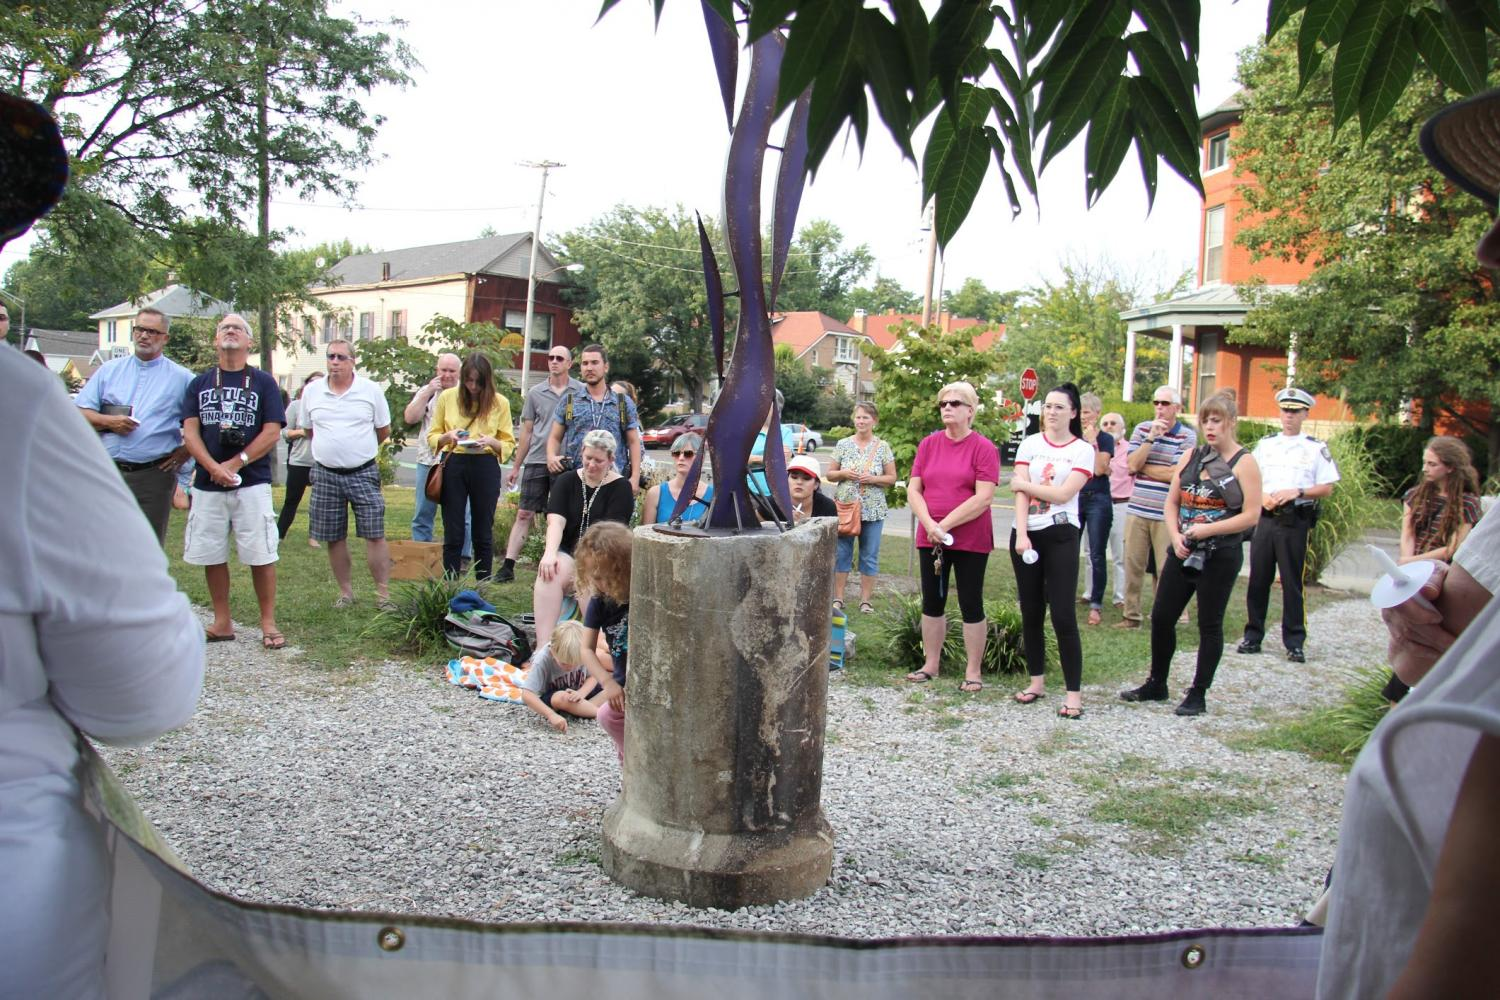 At+the+East+Spring+Street+Neighborhood+Park+in+New+Albany%2C+community+members+and+councilmen+gather+for+a+vigil+hosted+by+the+East+Spring+St.+Neighborhood+Association+%28ESNA%29.+The+crowd+gathered+in+response+to+Charlottesville%2C+VA%2C+where+this+past+weekend+a+woman+was+killed+and+others+injured+when+a+car+drove+into+a+crowd+of+people+protesting+the+rally+of+white+supremacists+and+neo-Nazis.